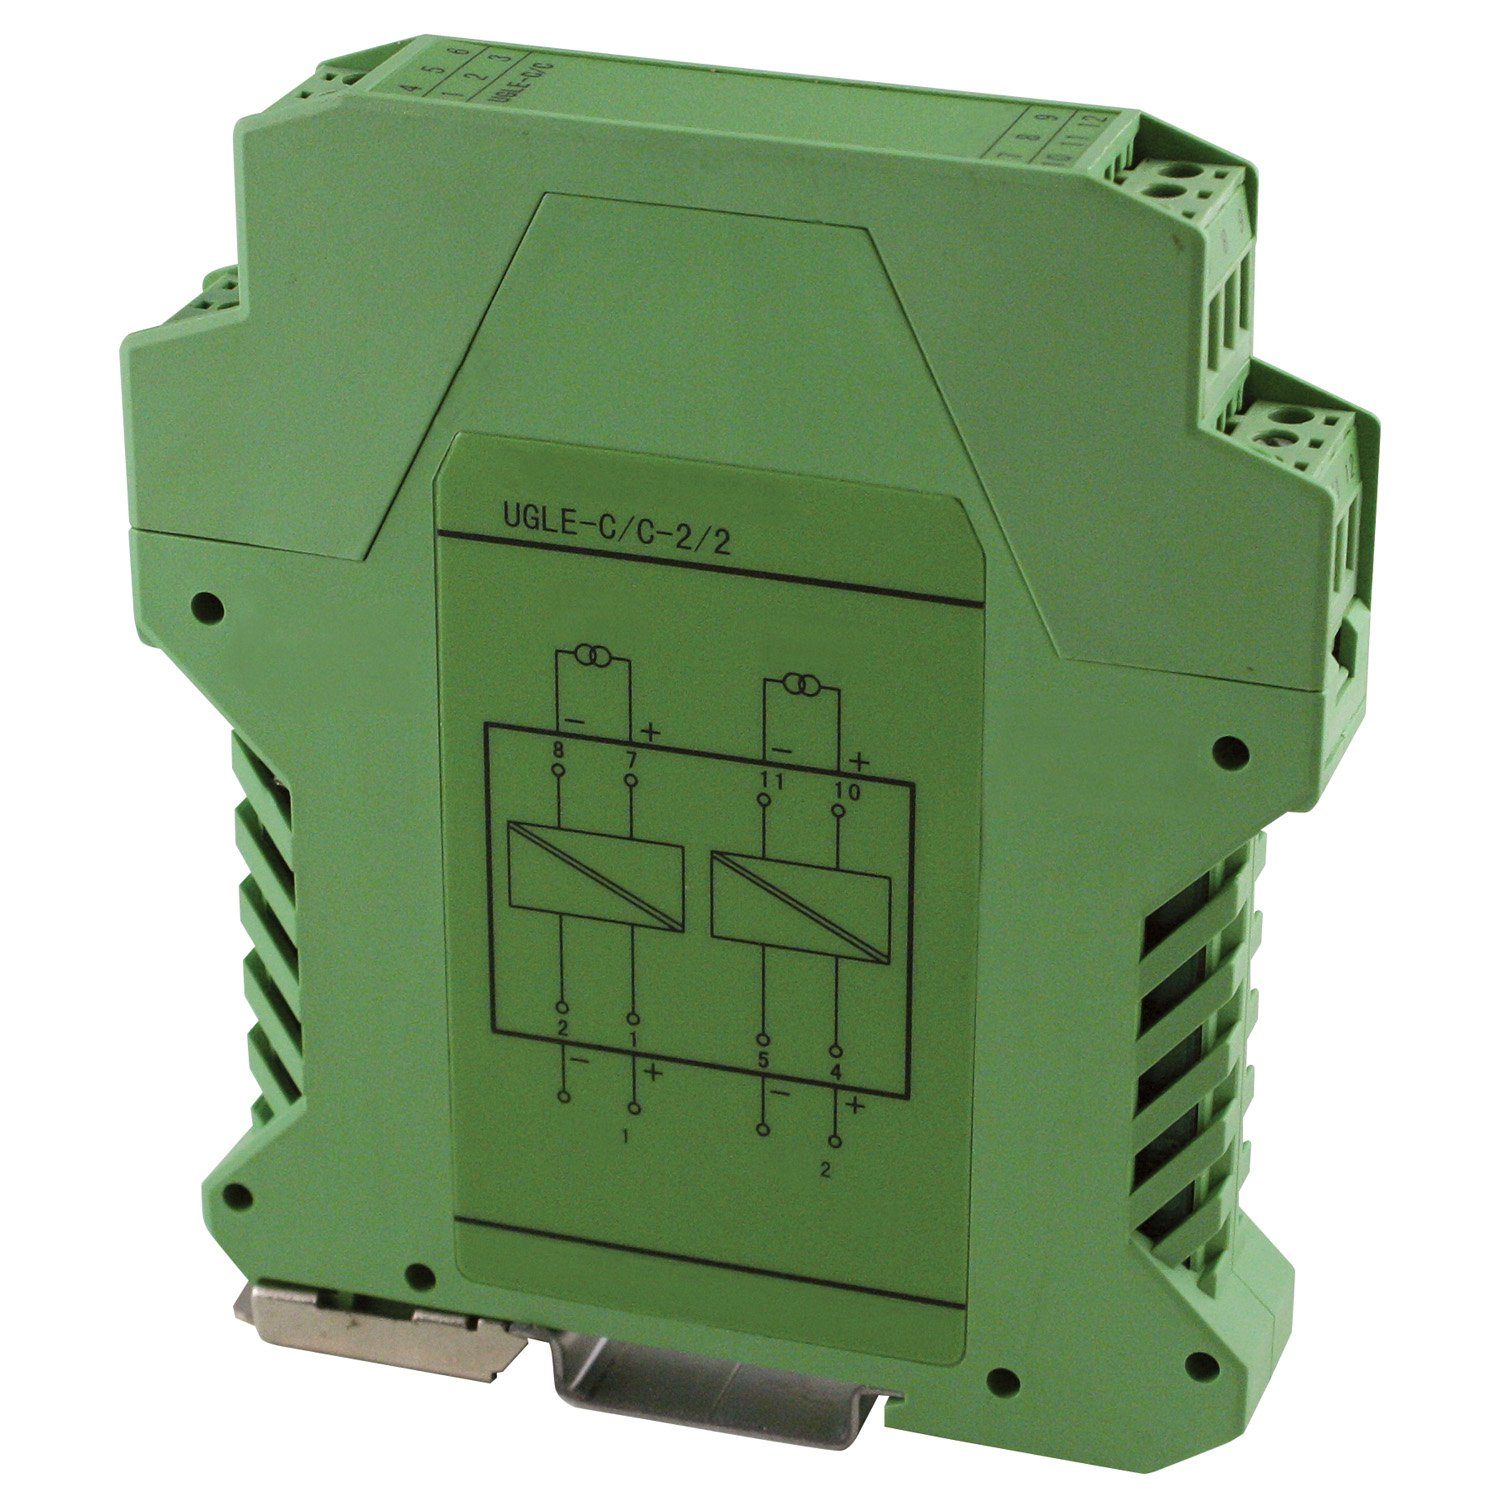 ASI ASI451130 Two Channel Loop Powered Analog Signal Isolator Transmitter, DIN Rail Mount, 4-20 mA Input, 4-20 mA Output